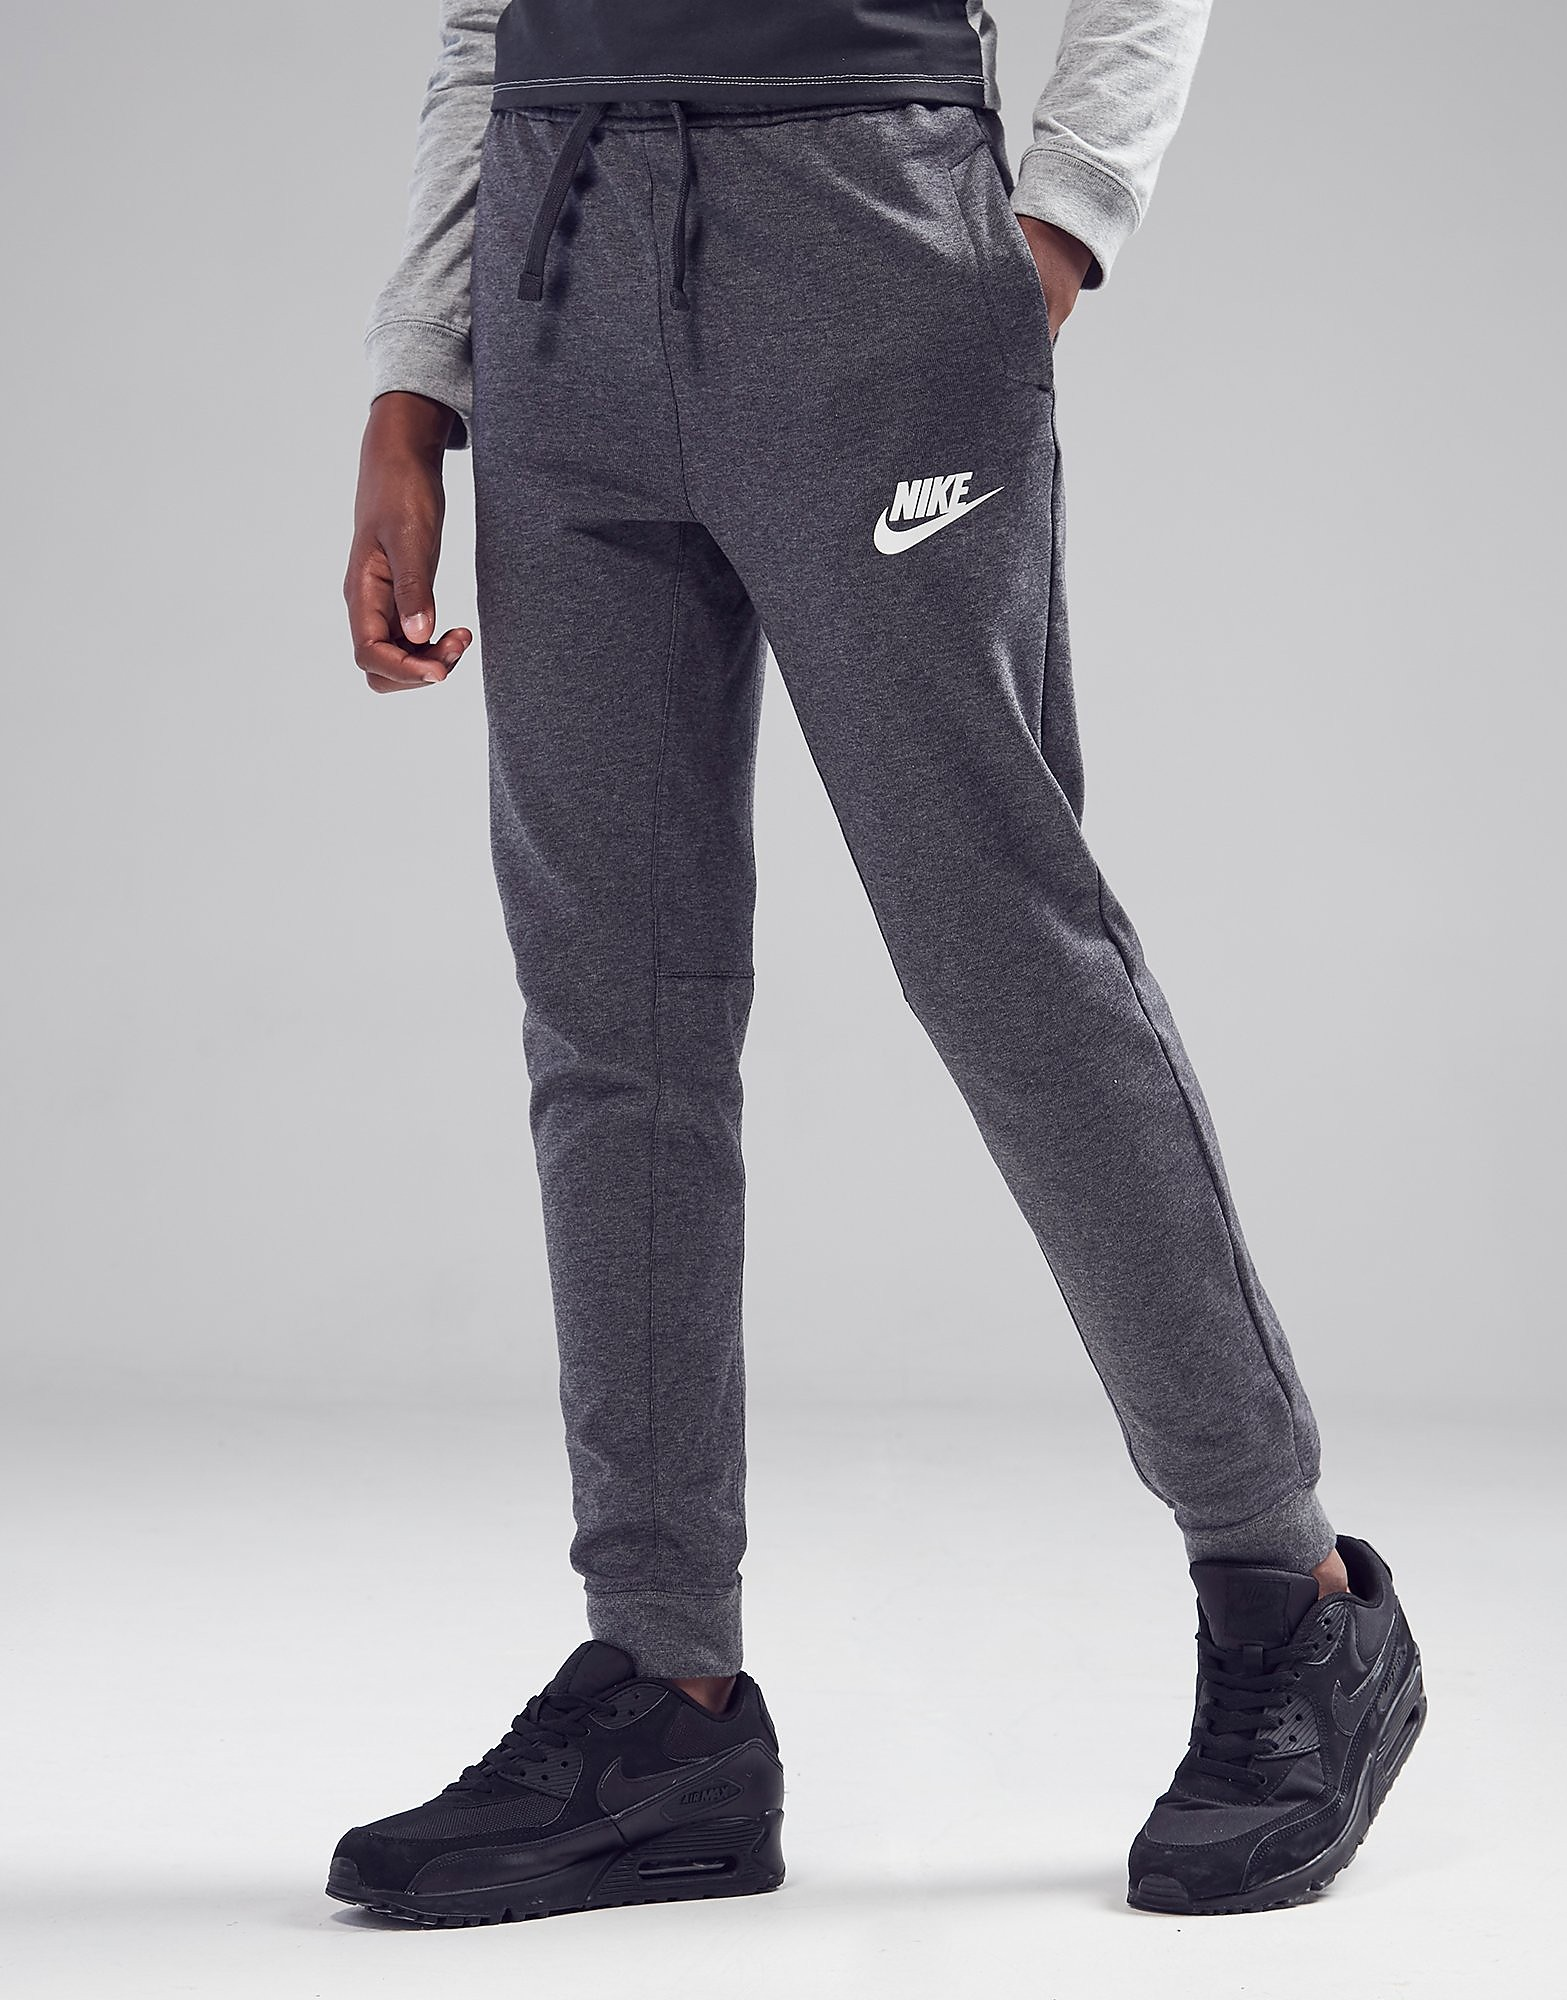 Nike pantalón Advance Fleece júnior